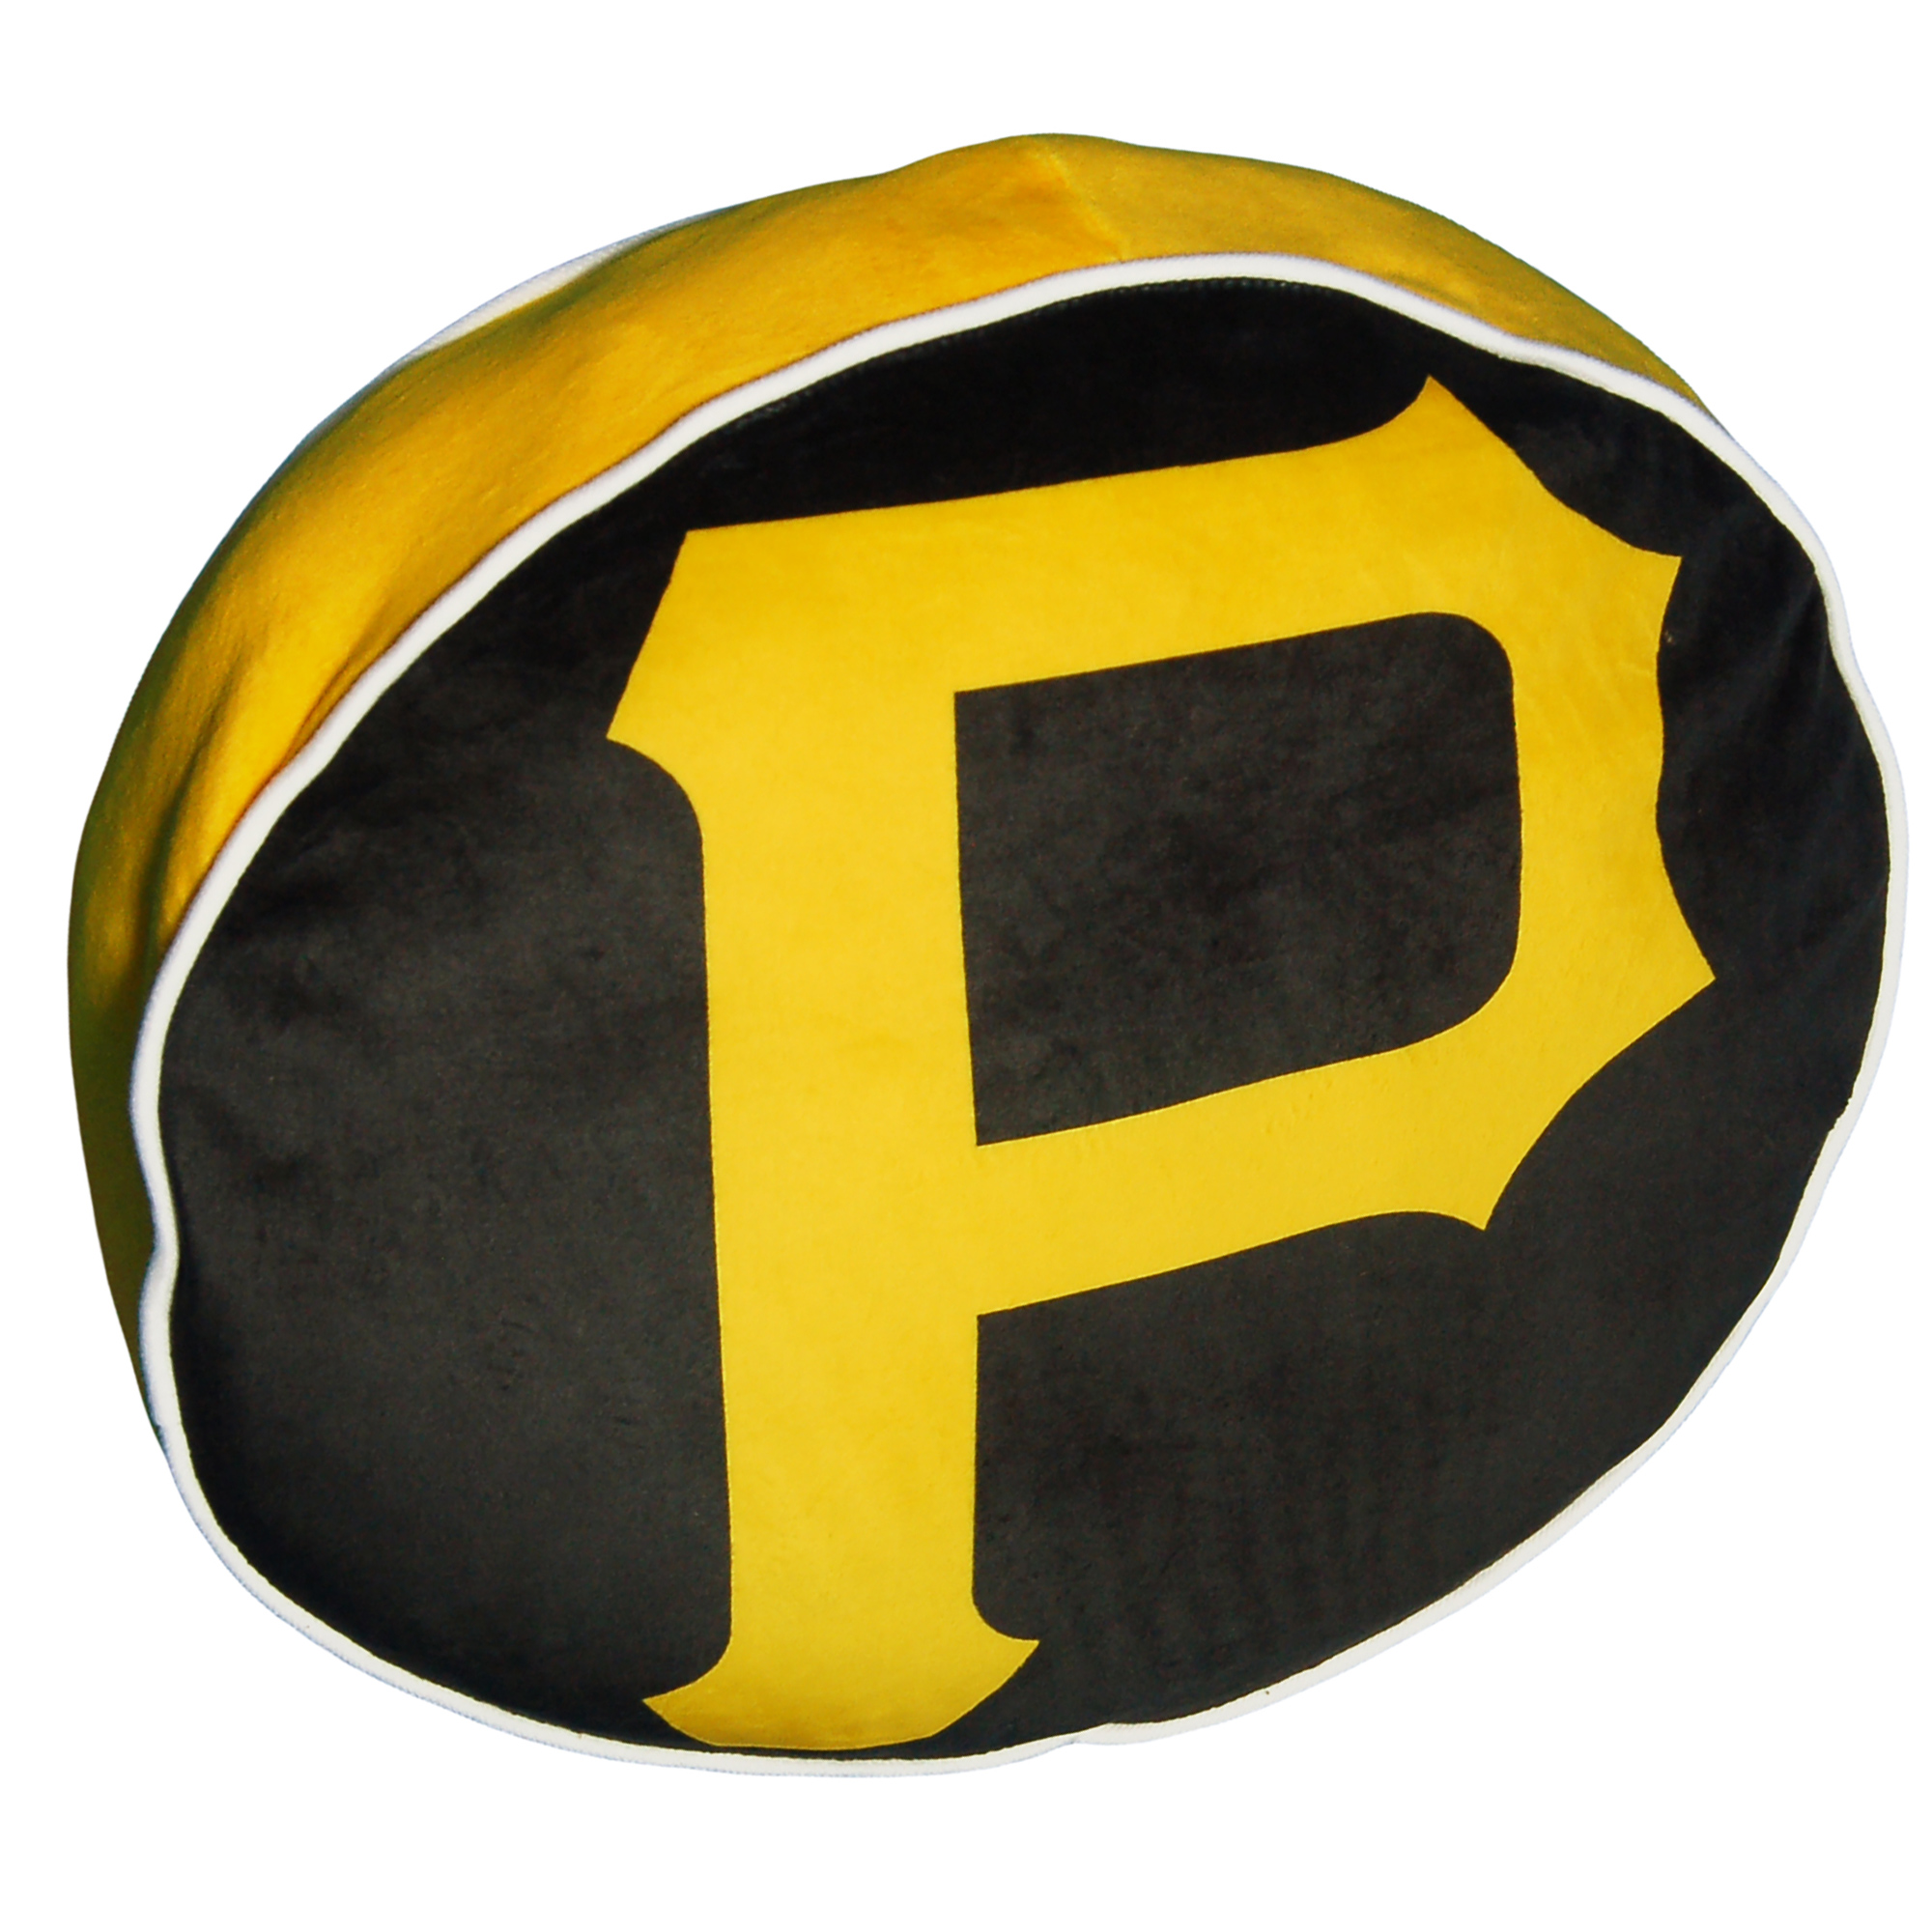 Pittsburgh Pirates The Northwest Company 15'' x 15'' Cloud Pillow - No Size